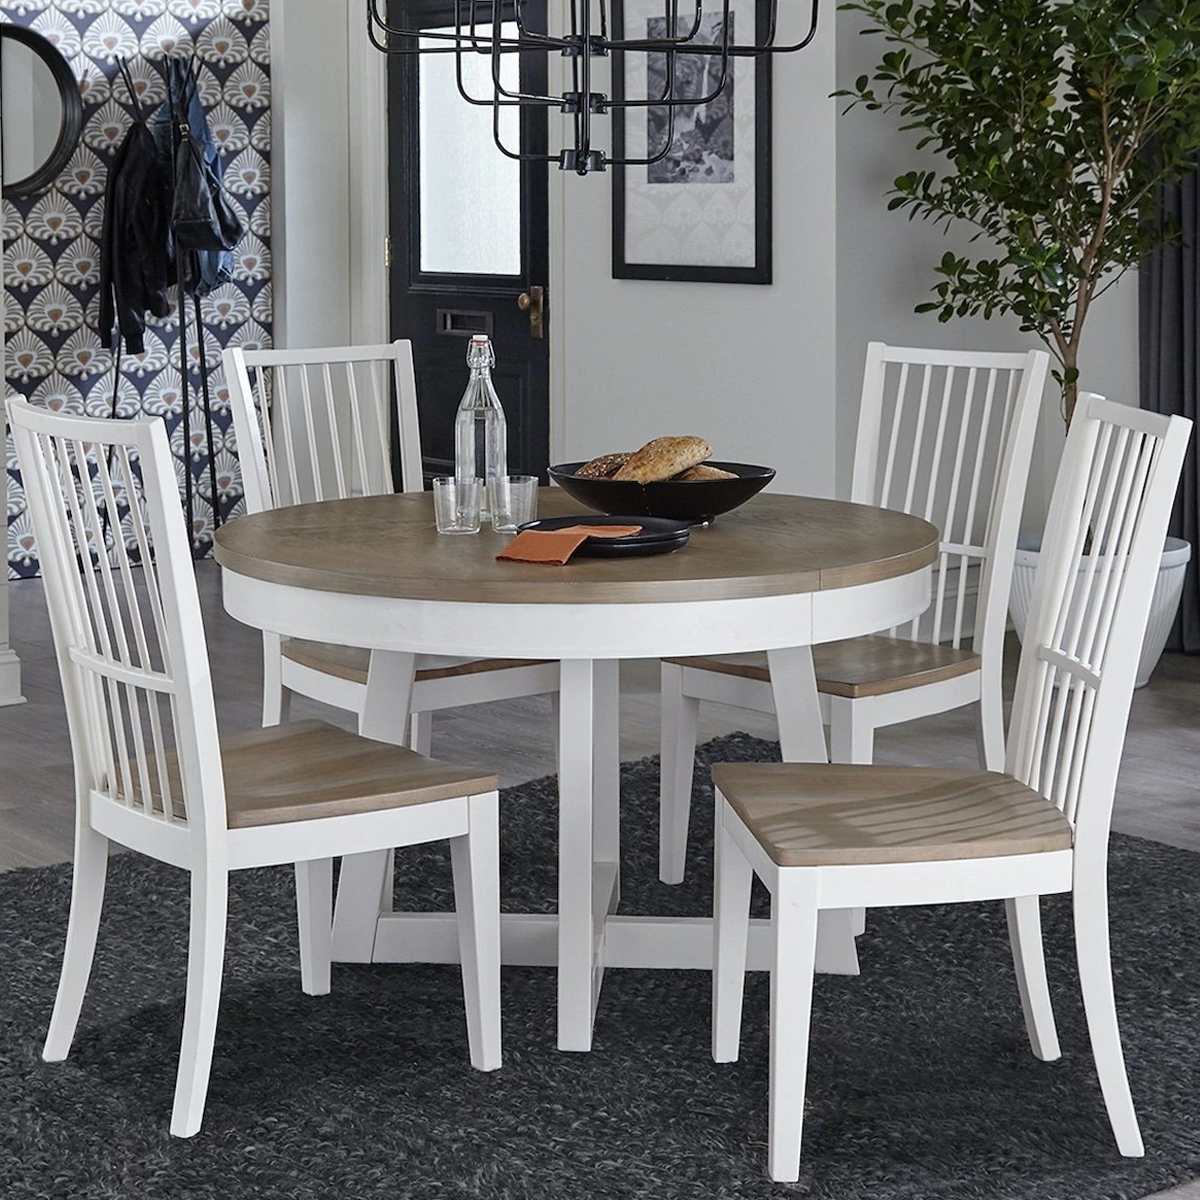 Picture of AMERICANA ROUND 5 PIECE DINING SET